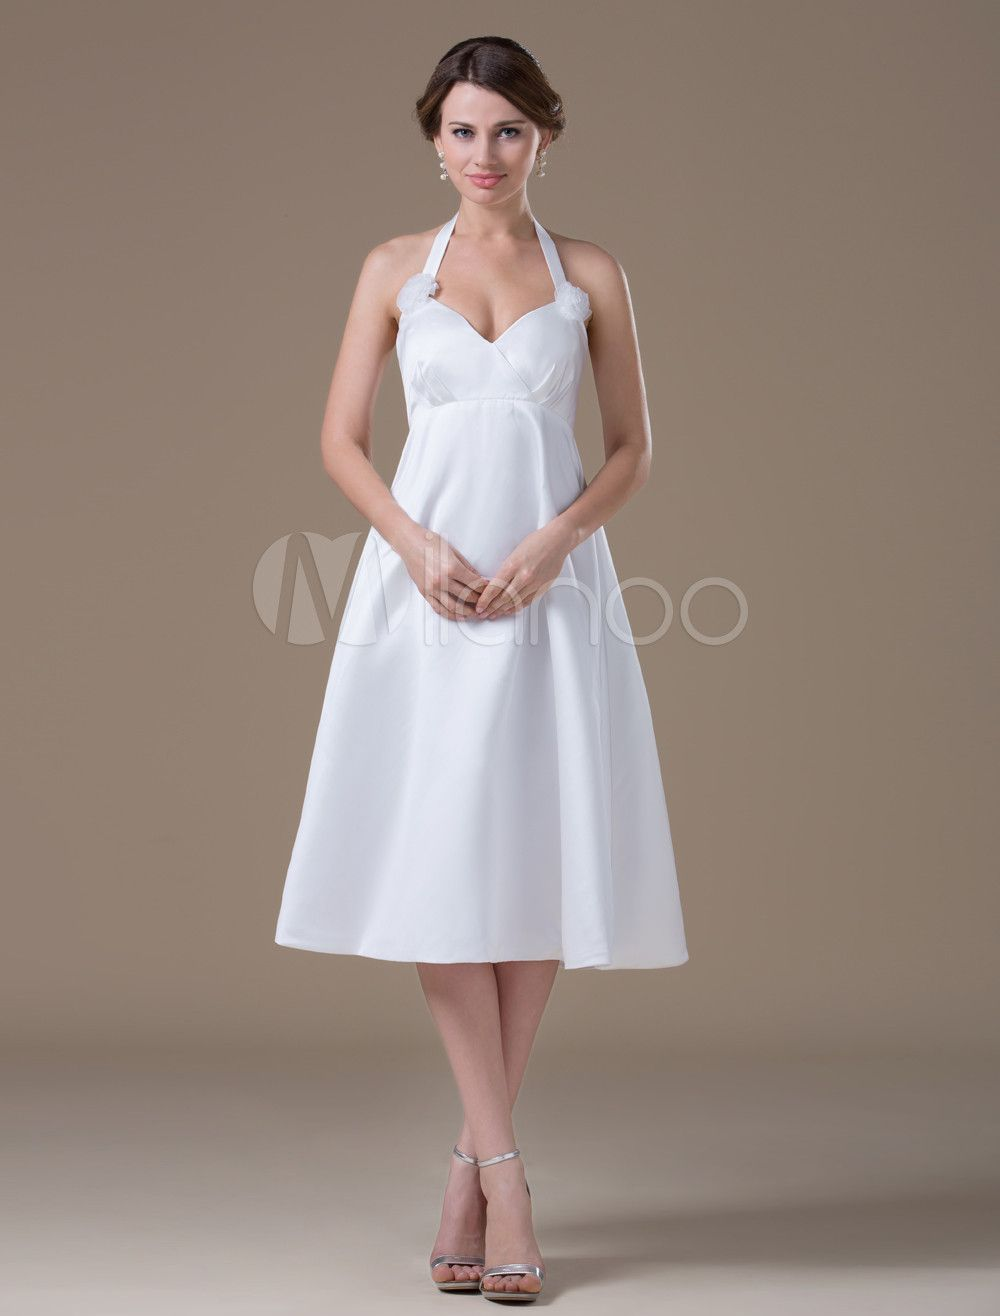 Mini white wedding dress  Milanoo Ltd Wedding Dresses White Maternity VNeck Halter